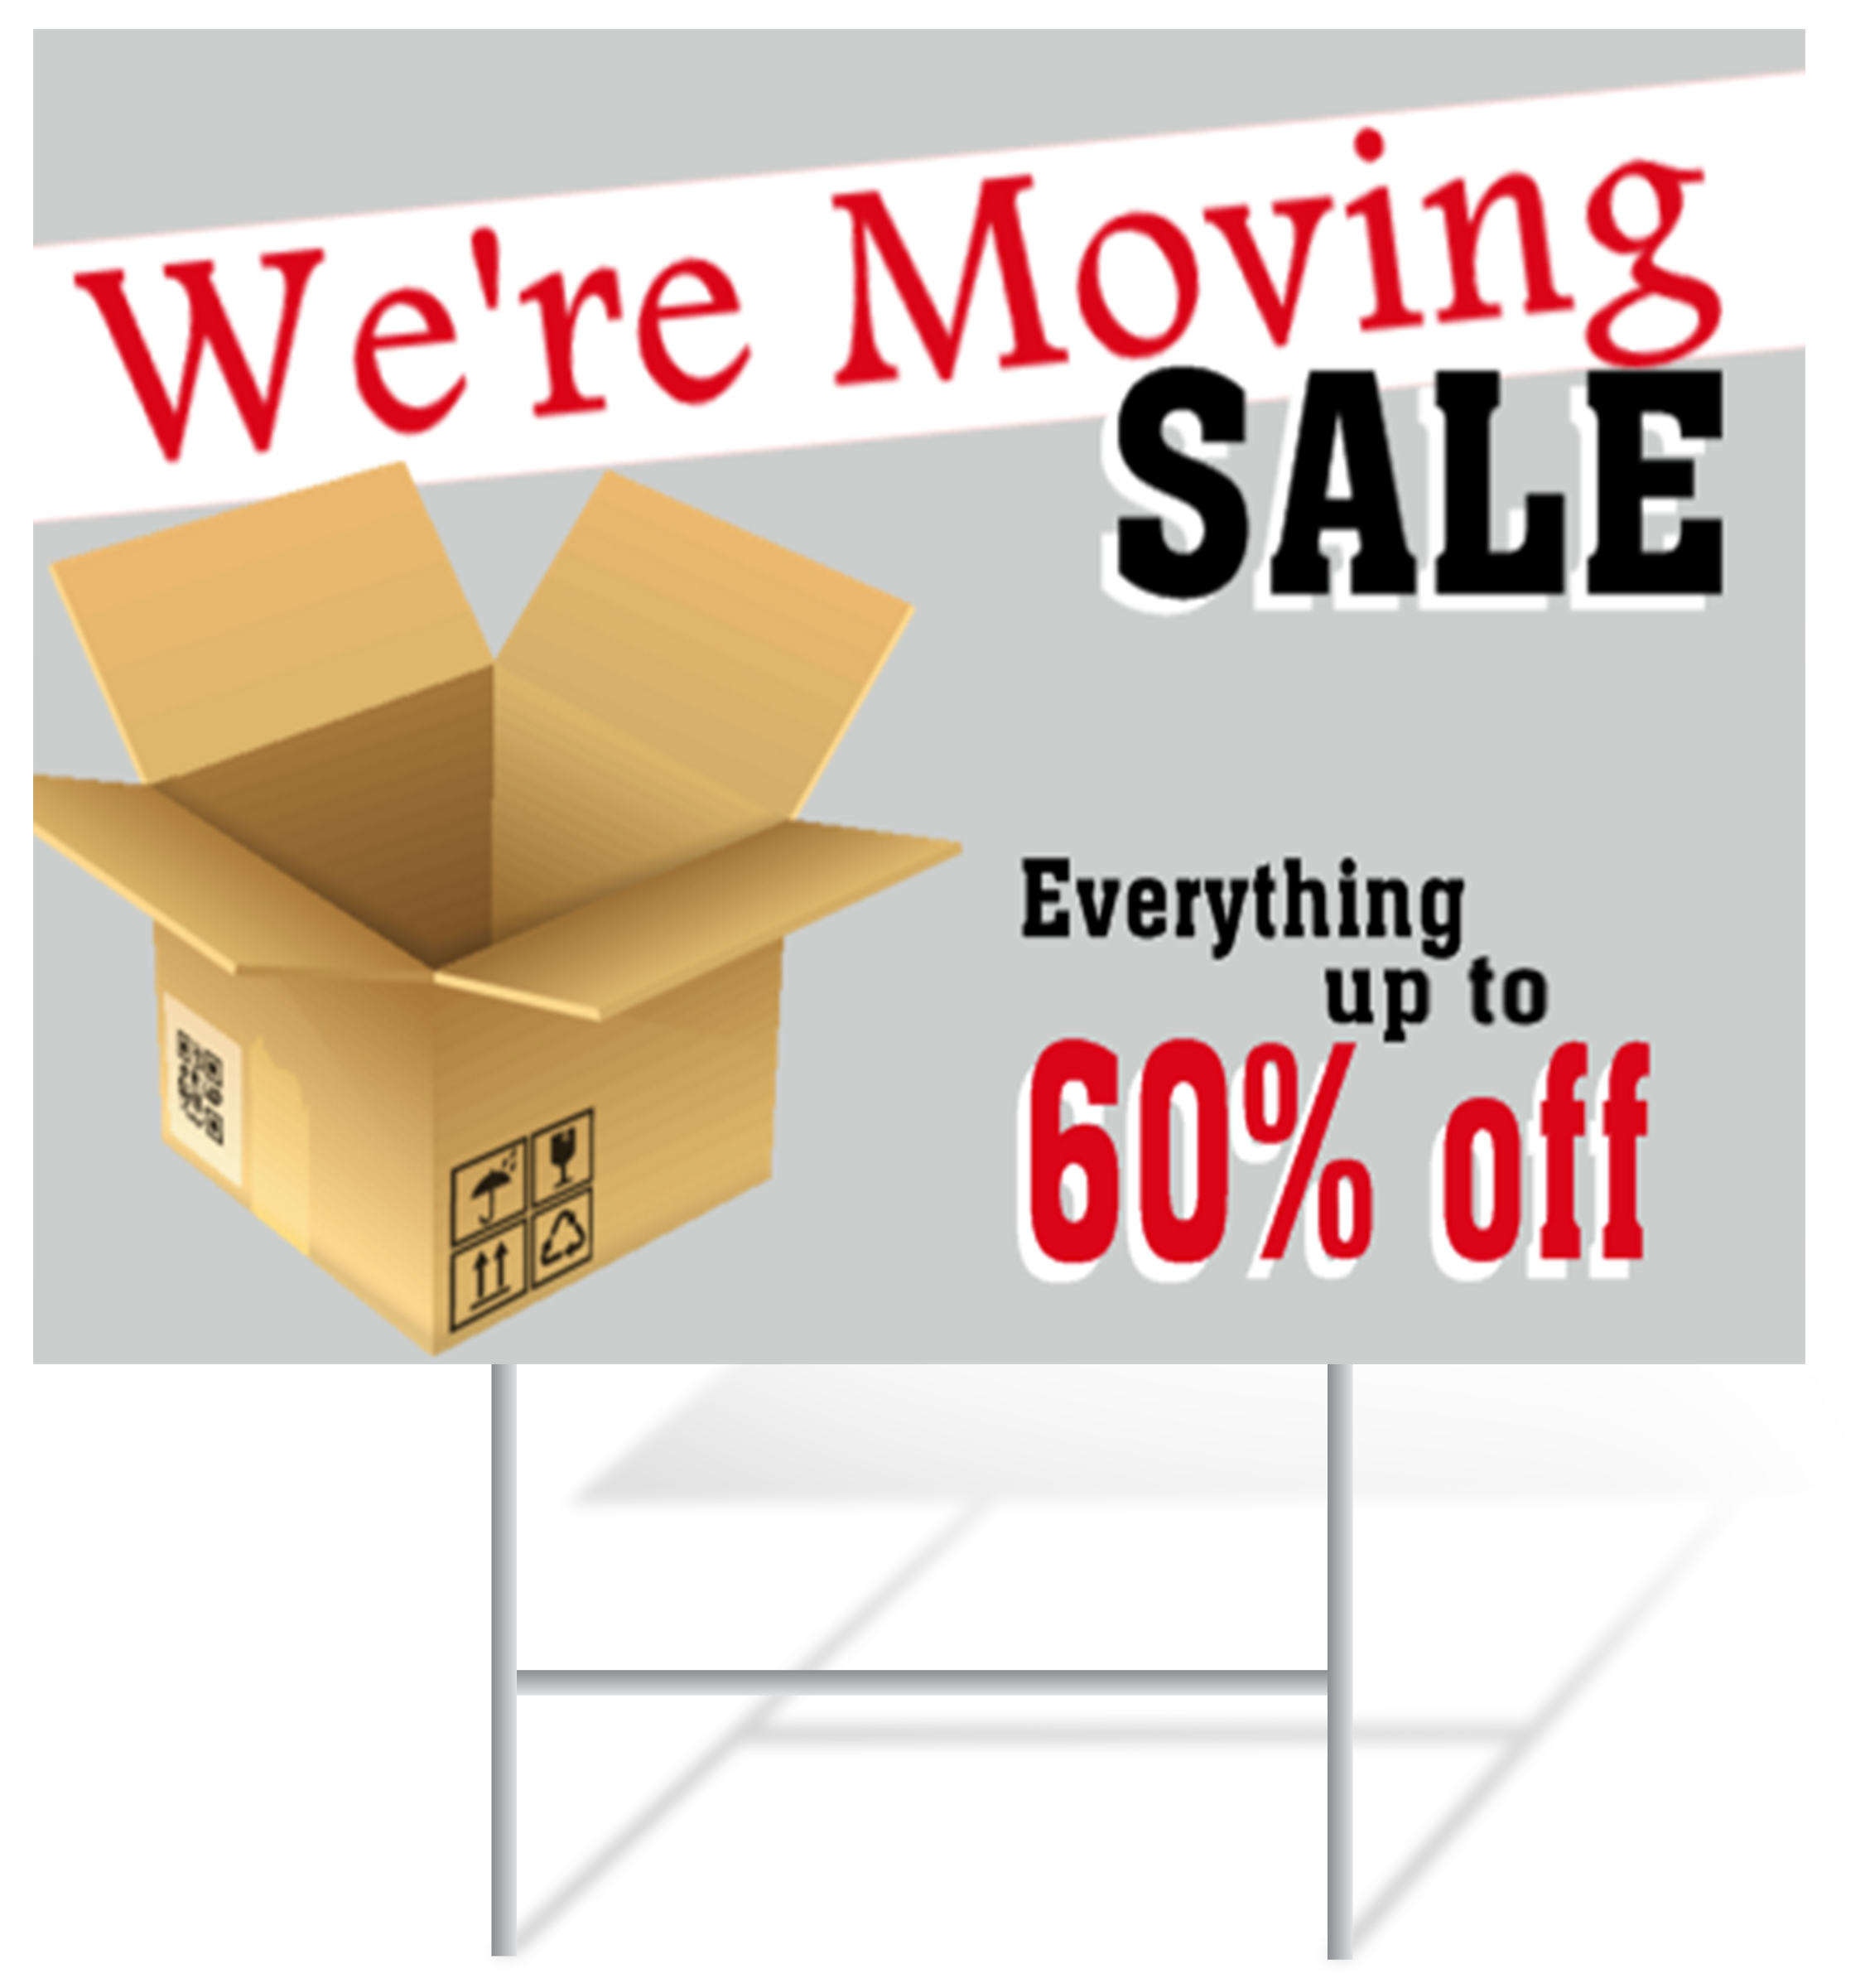 Moving Sale Lawn Sign Example | LawnSigns.com